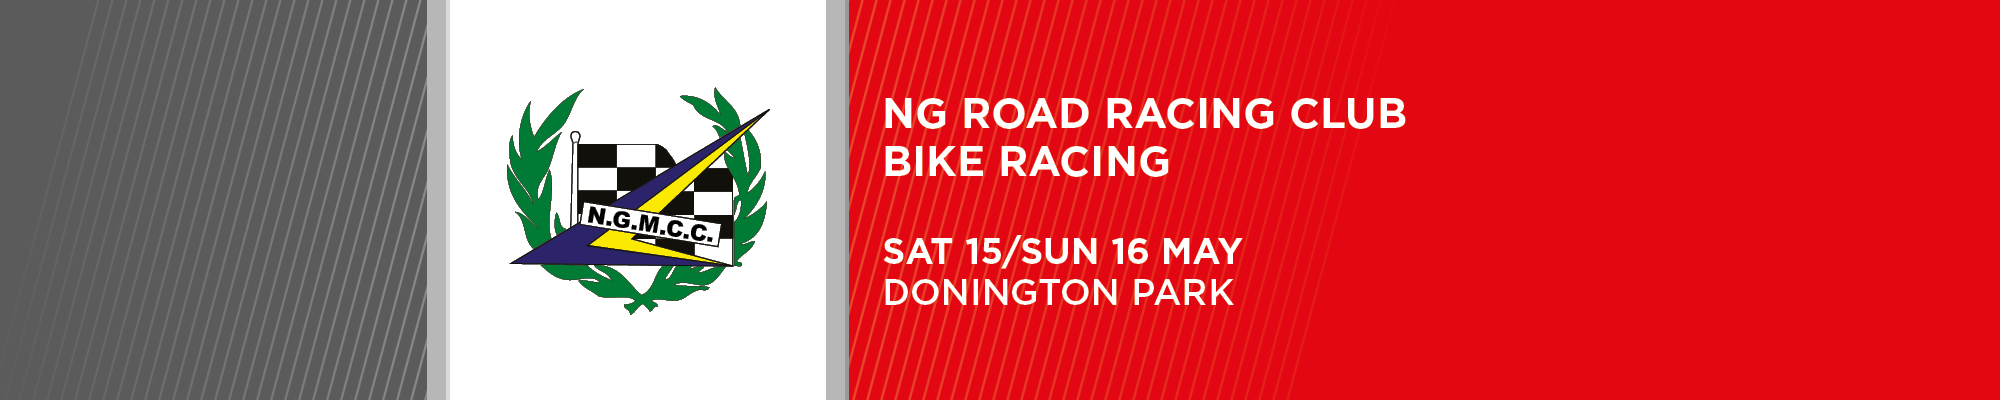 NG Road Racing Club - NO SPECTATORS